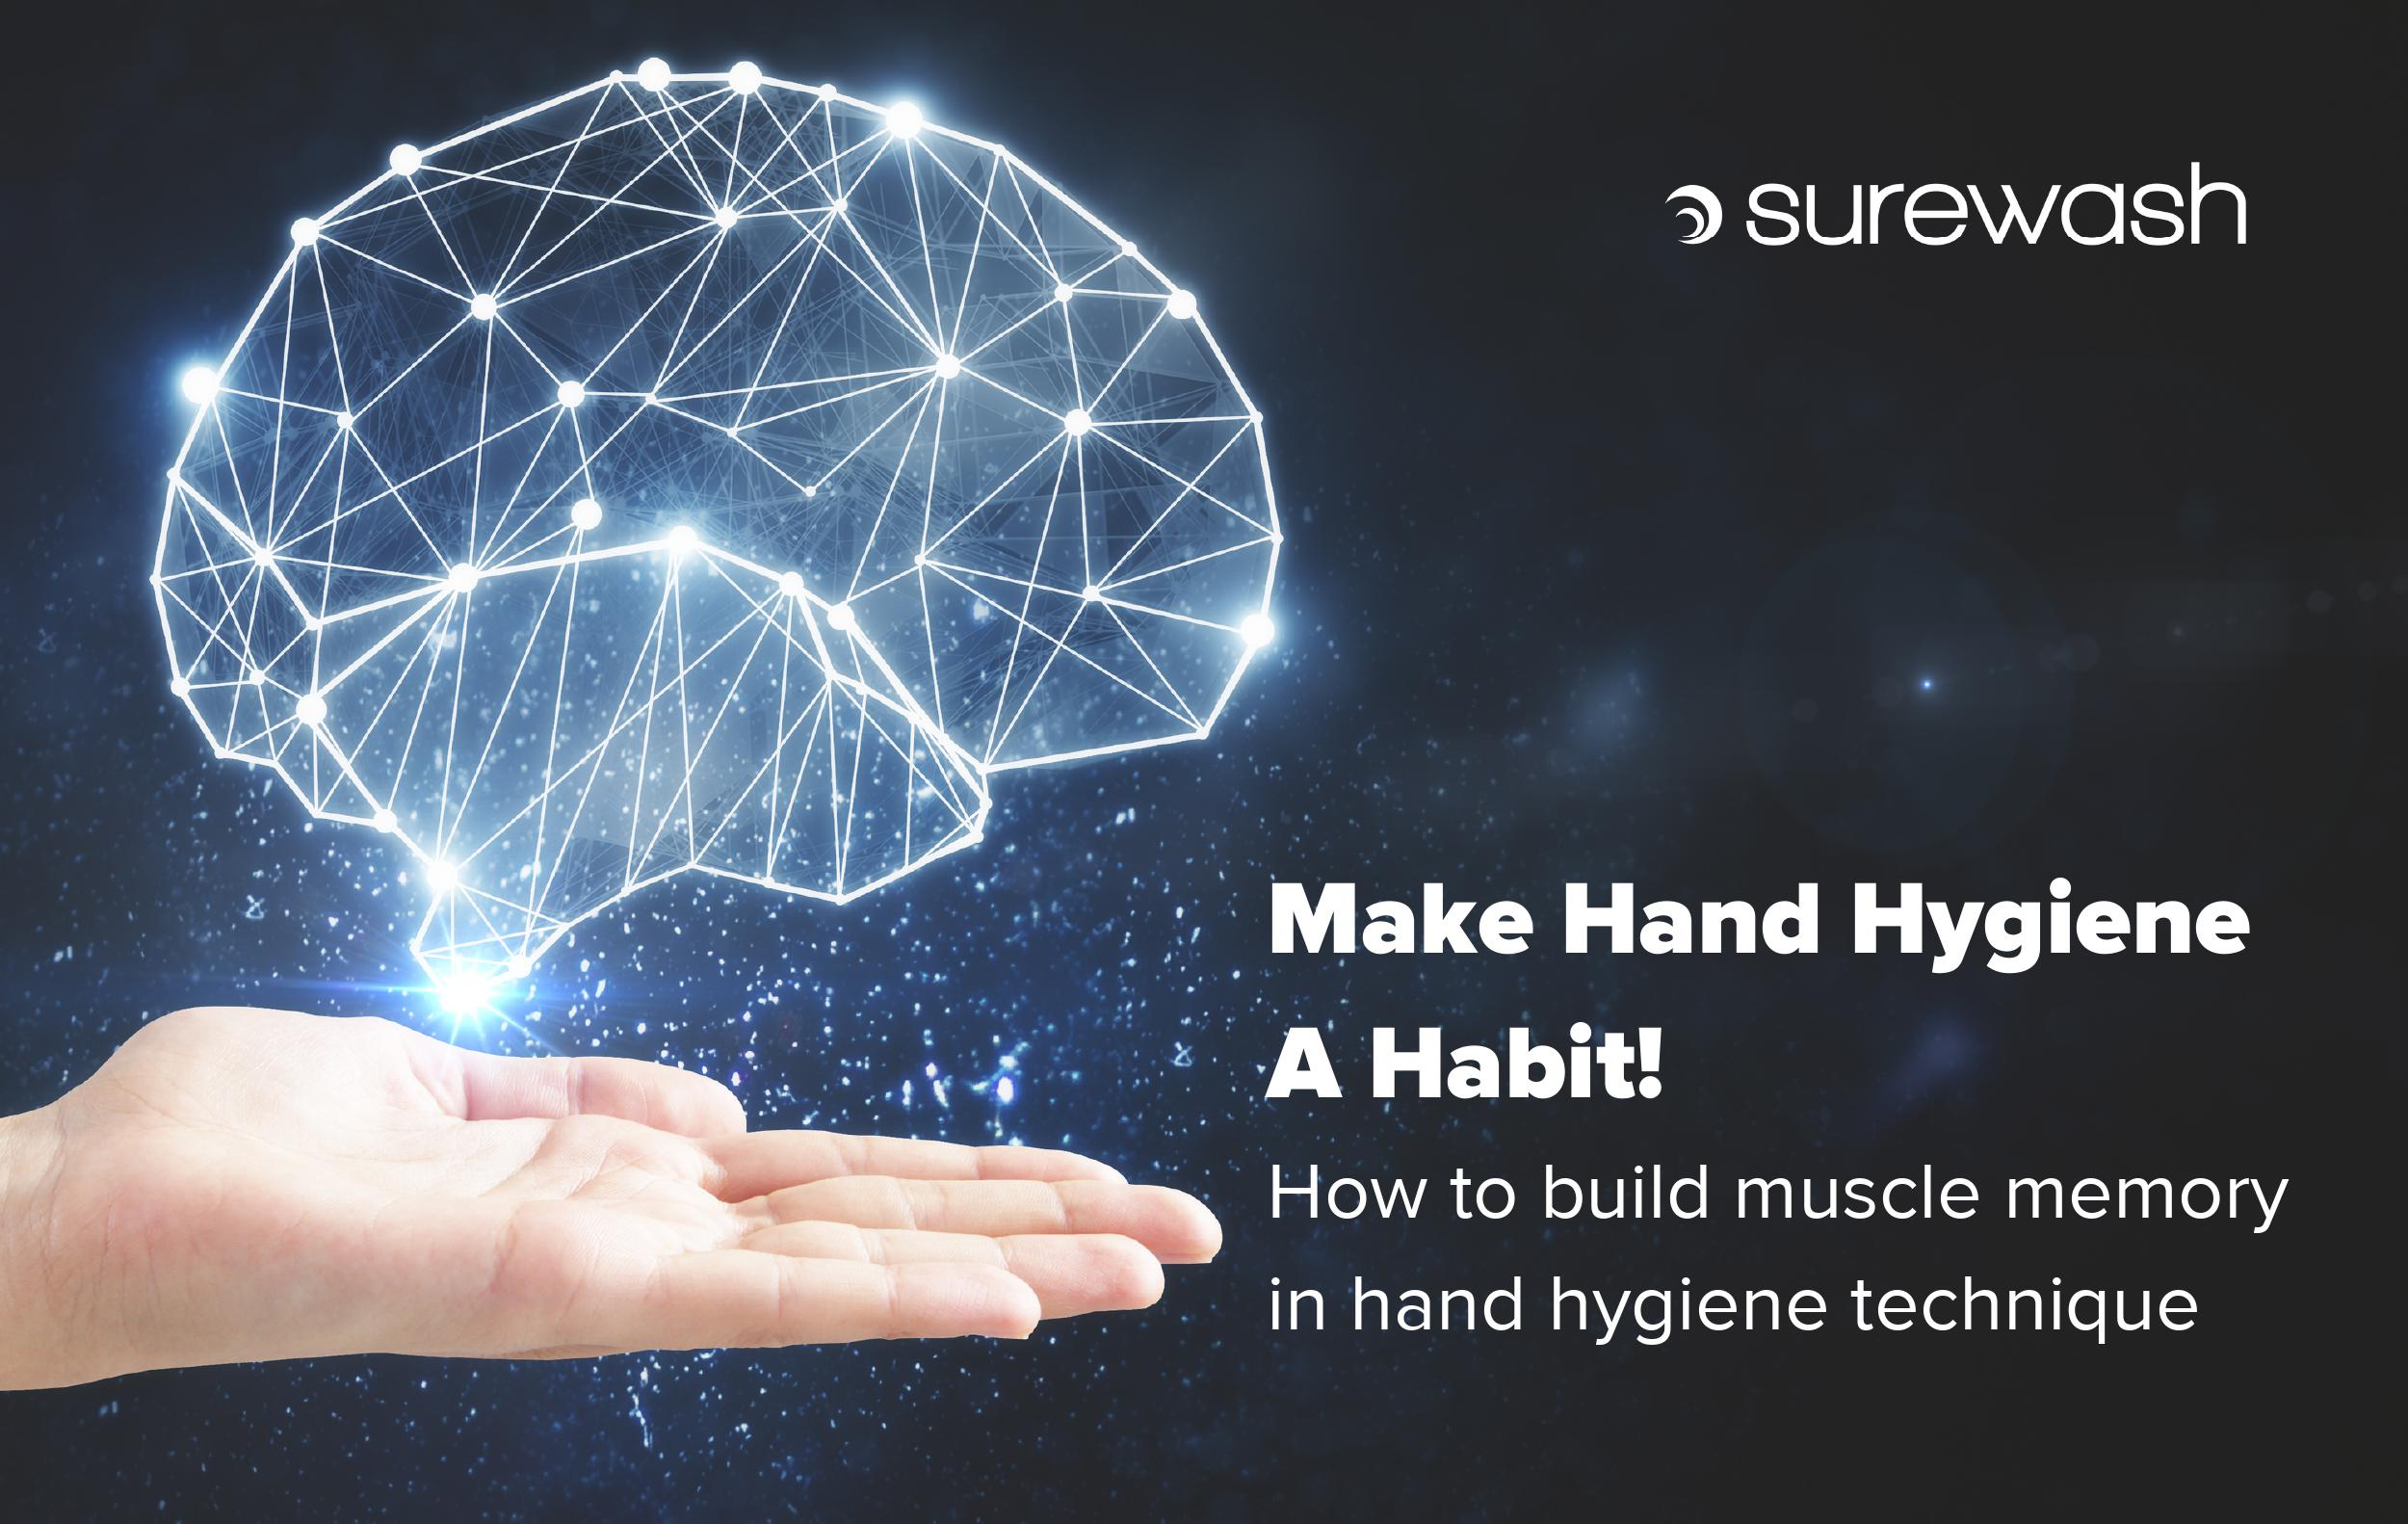 SureWash-technology-building-muscle-memory-in-hand-hygiene-technique